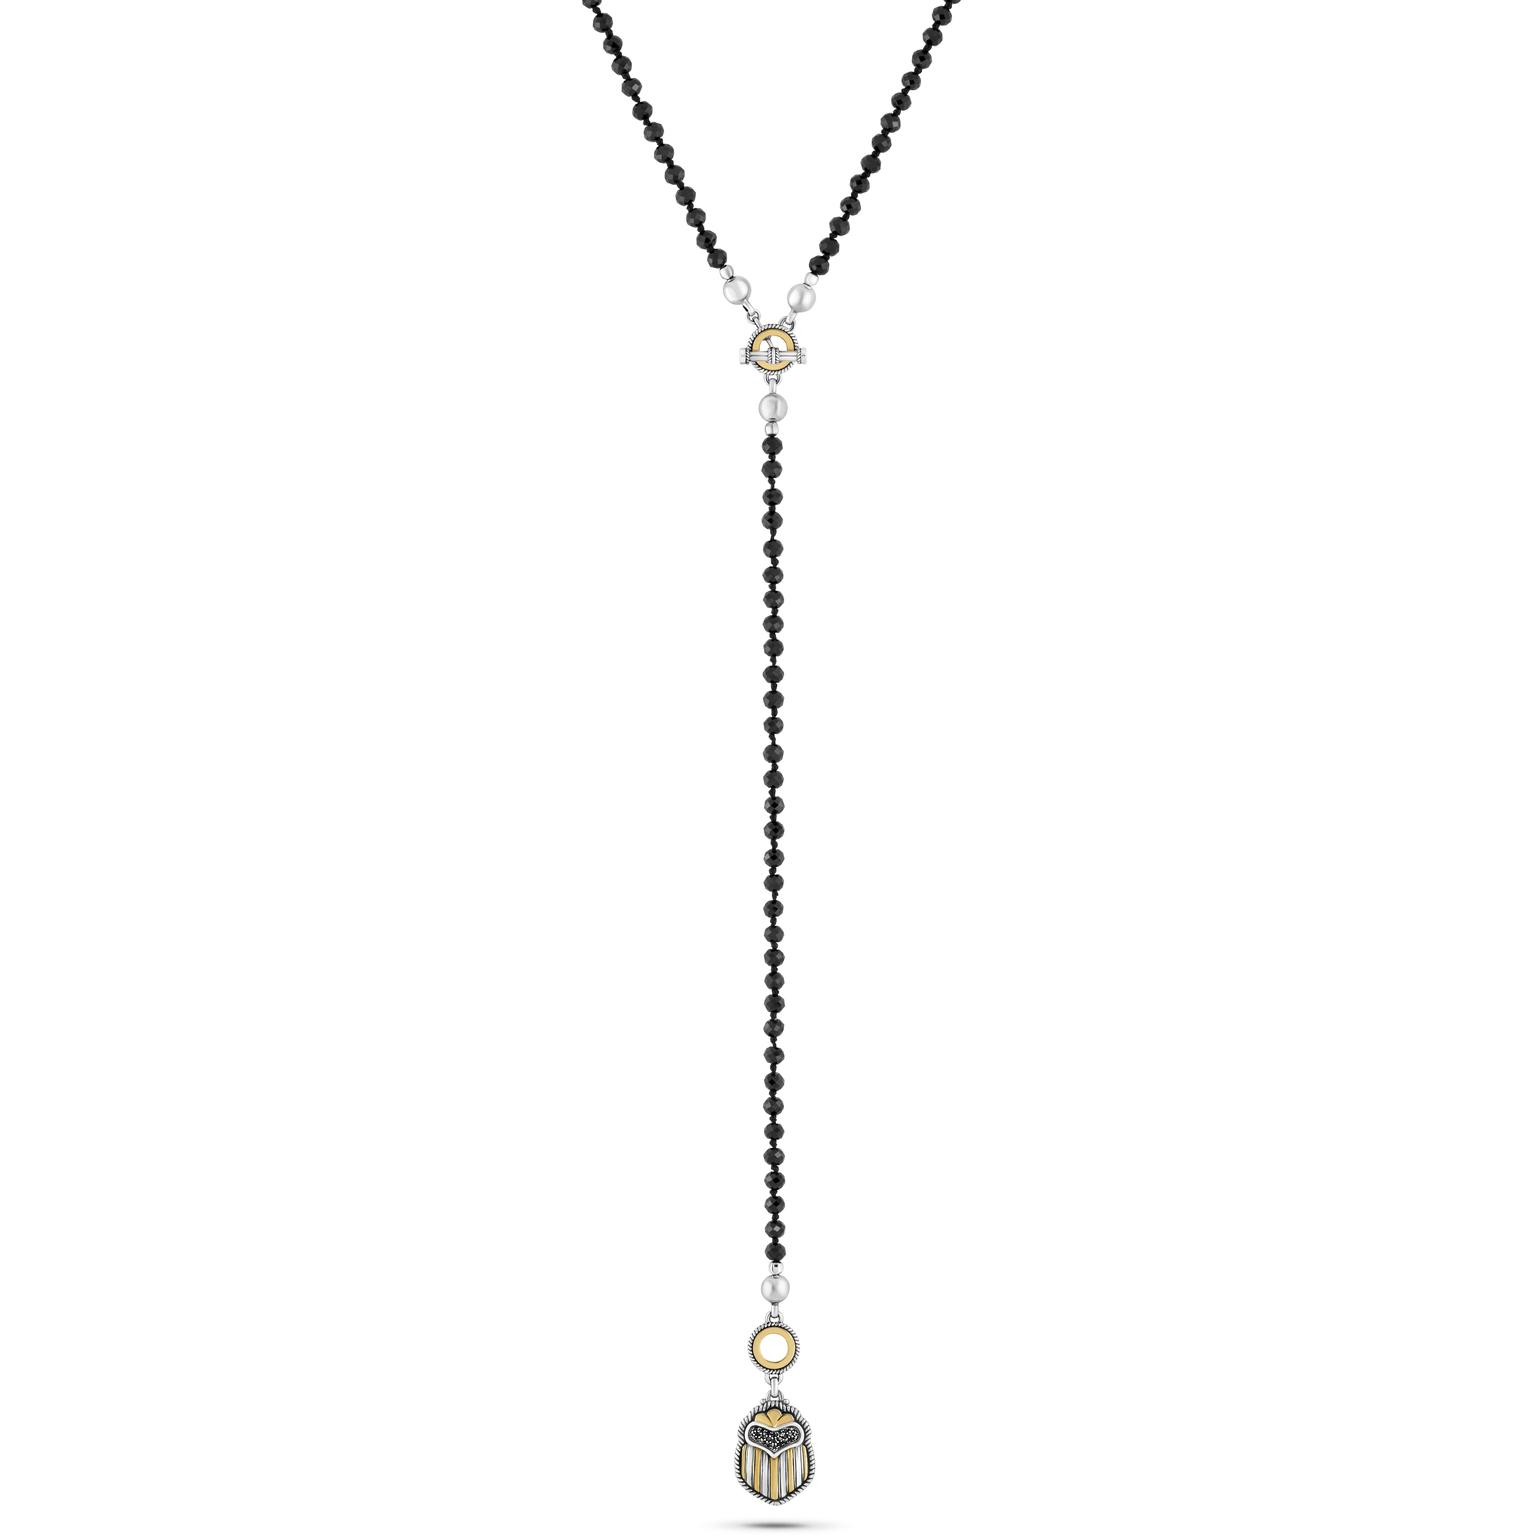 18kt Gold and sterling silver beaded multi-way scarab necklace adorned with semi-precious and precious stones (2)